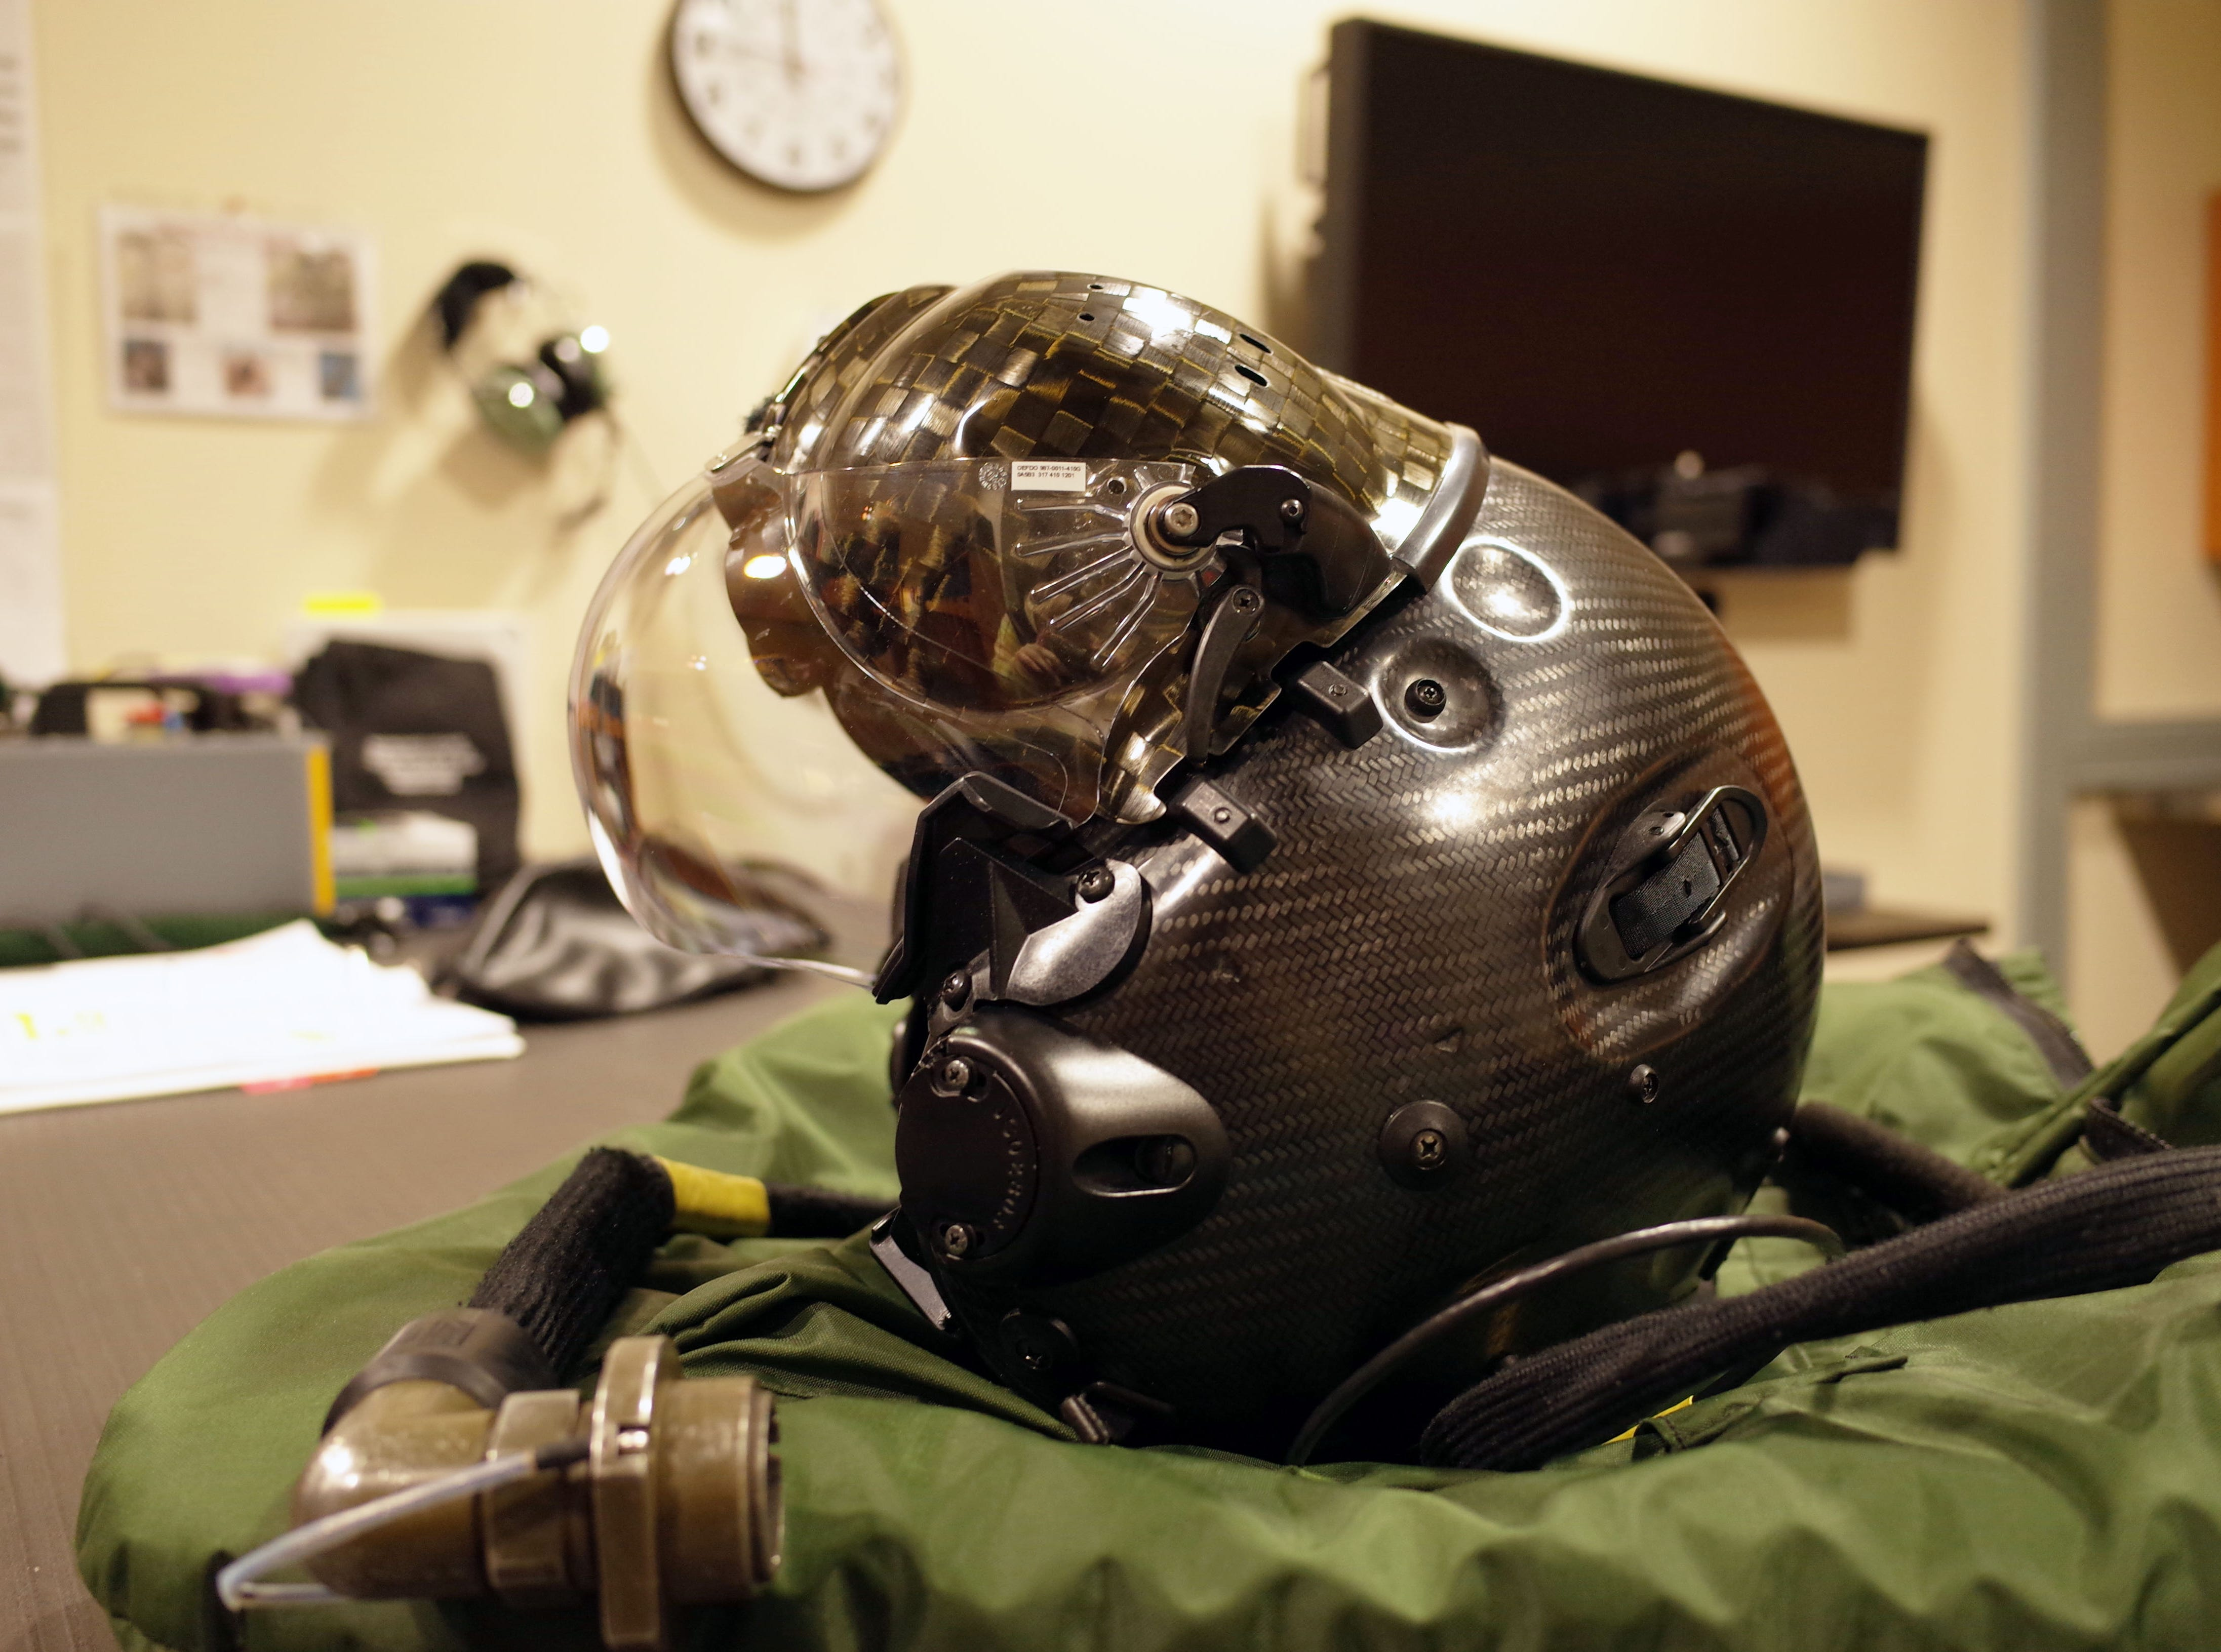 A picture of the flight helmet worn by F-35 pilots. The helmets cost about $400,000, according to a Luke Air Force Base spokesman.